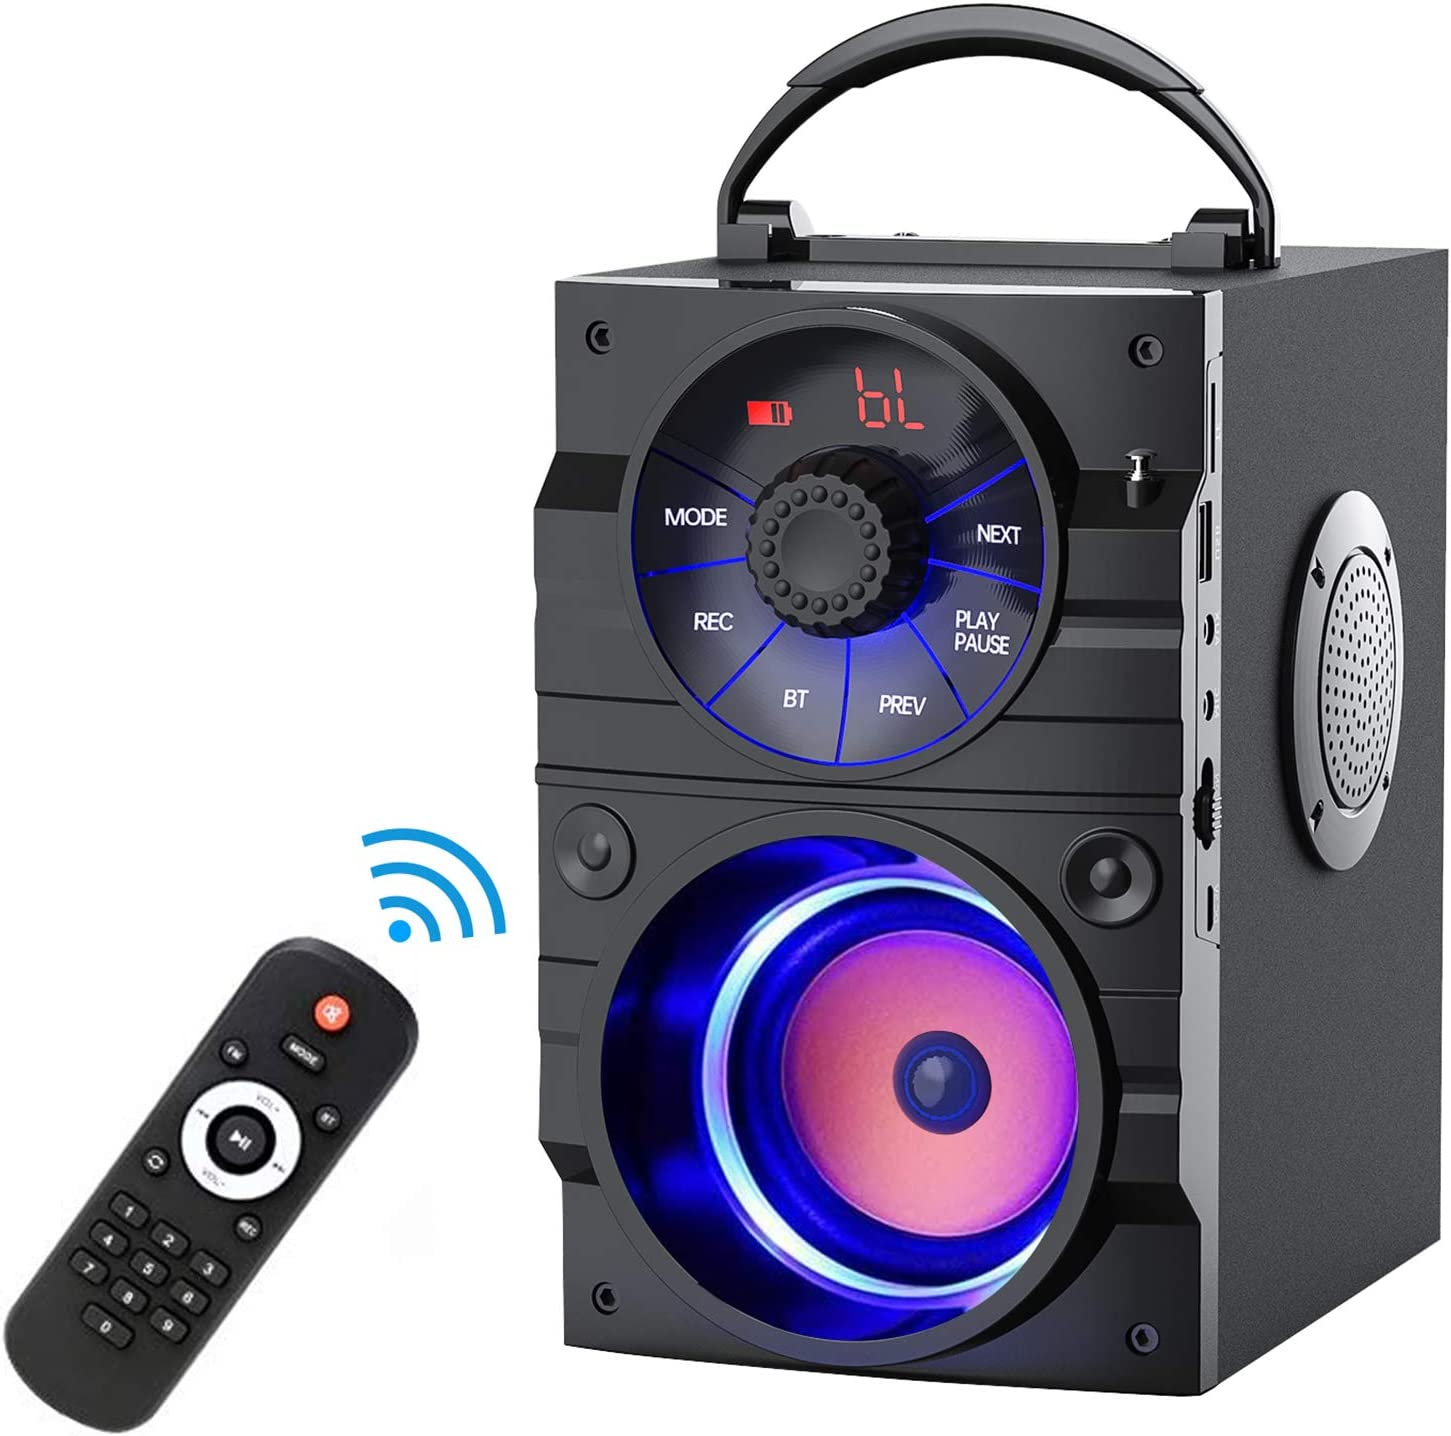 EIFER Portable Bluetooth Speaker Subwoofer Heavy Bass Wireless Outdoor Party Speaker MP3 Player Line in Speakers Support Remote Control FM Radio TF Card LCD Display for Home Party Phone (A9-1)